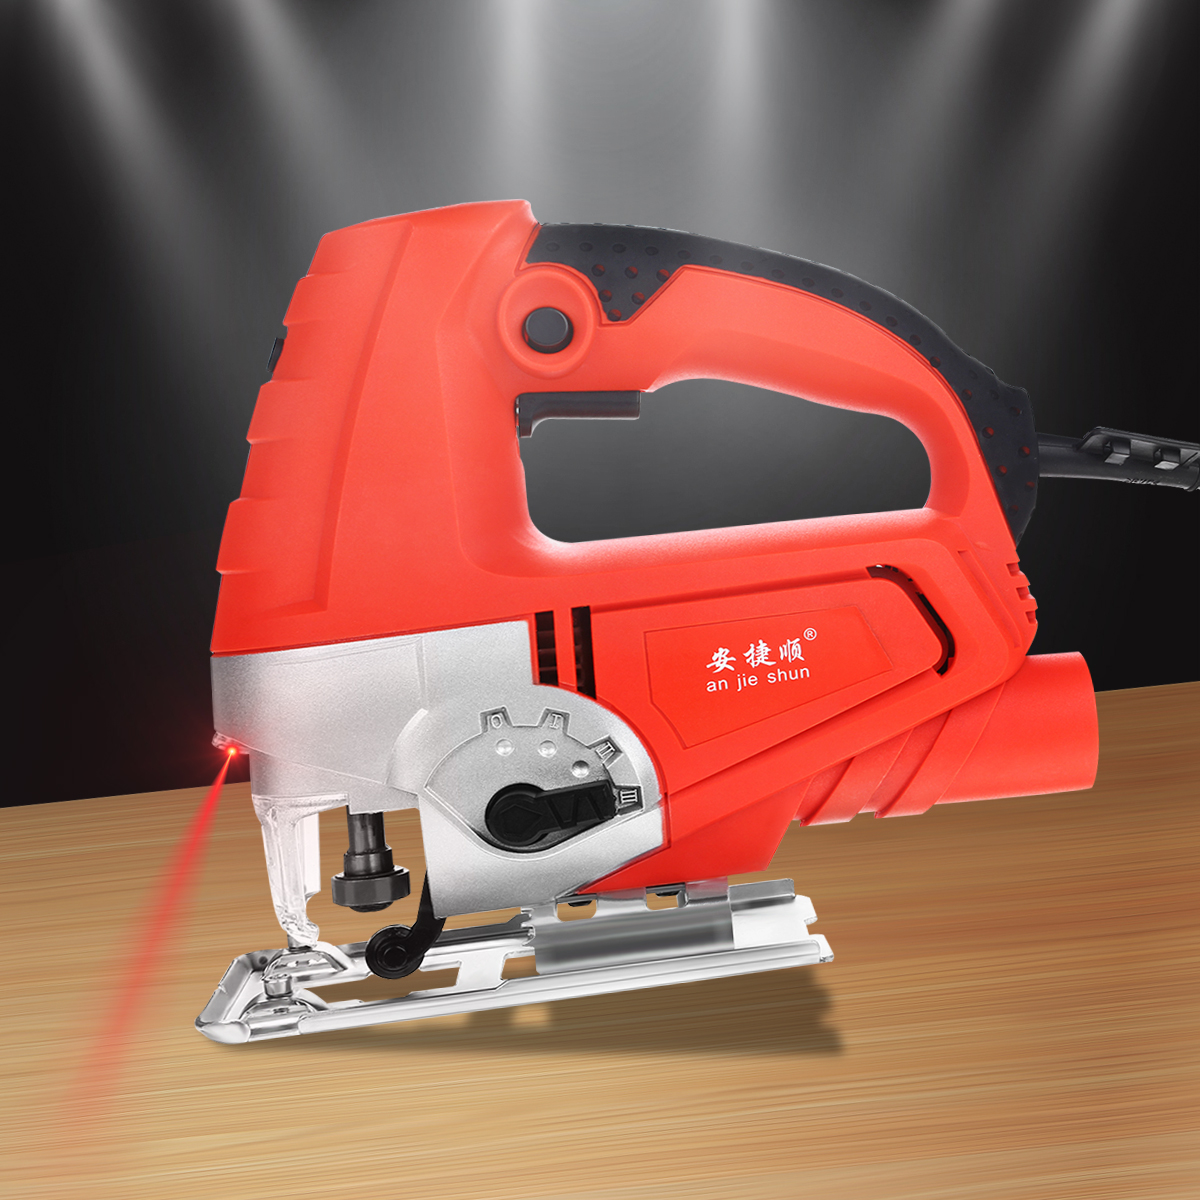 Raitool™ 500W Handle Jigsaw Kit Electric Jigsaw Cutting Machine Cutter Saw Tool With Laser Guide